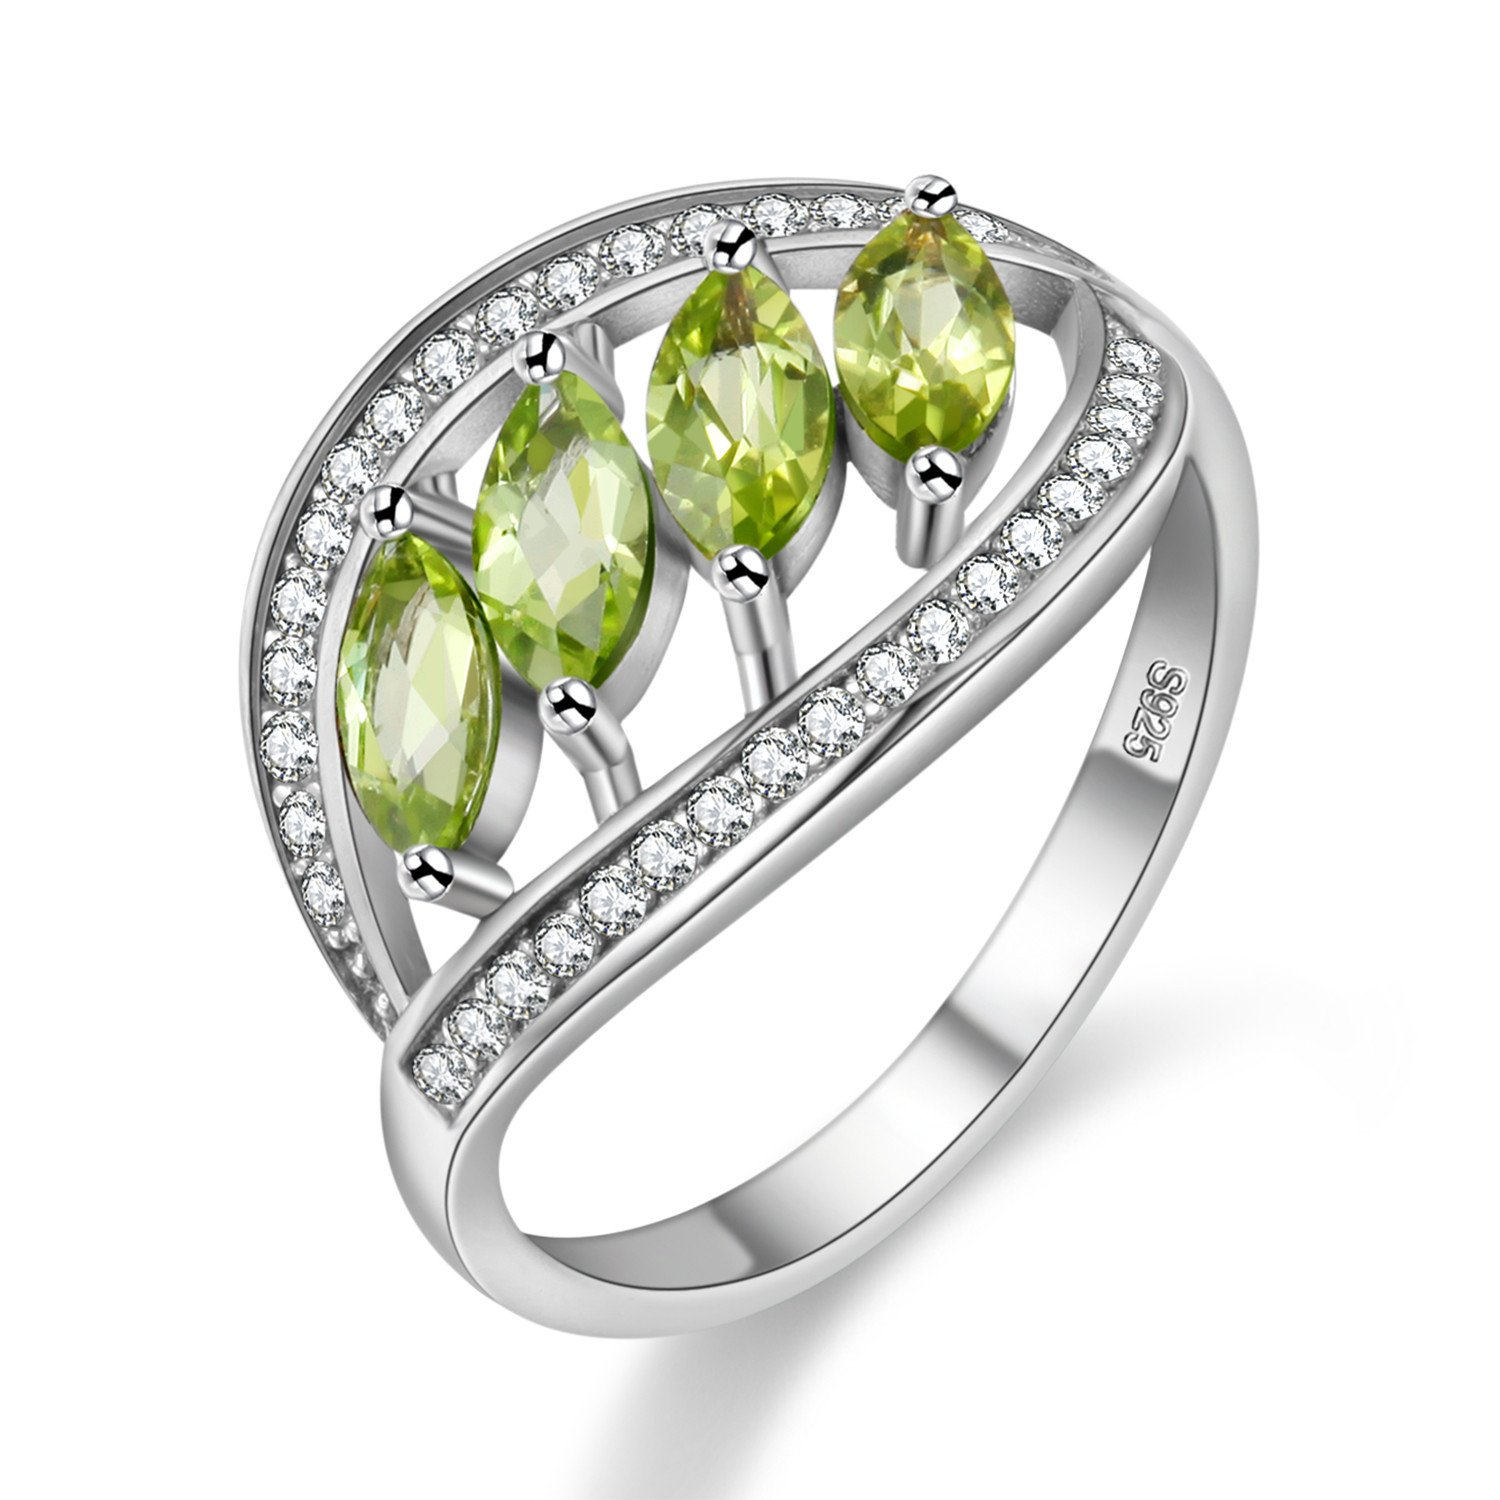 Uloveido August Birthstone Sterling Silver Anniversary Statement Ring for Women with 4 Pieces Natural Peridot Stones Size 8 FJ110